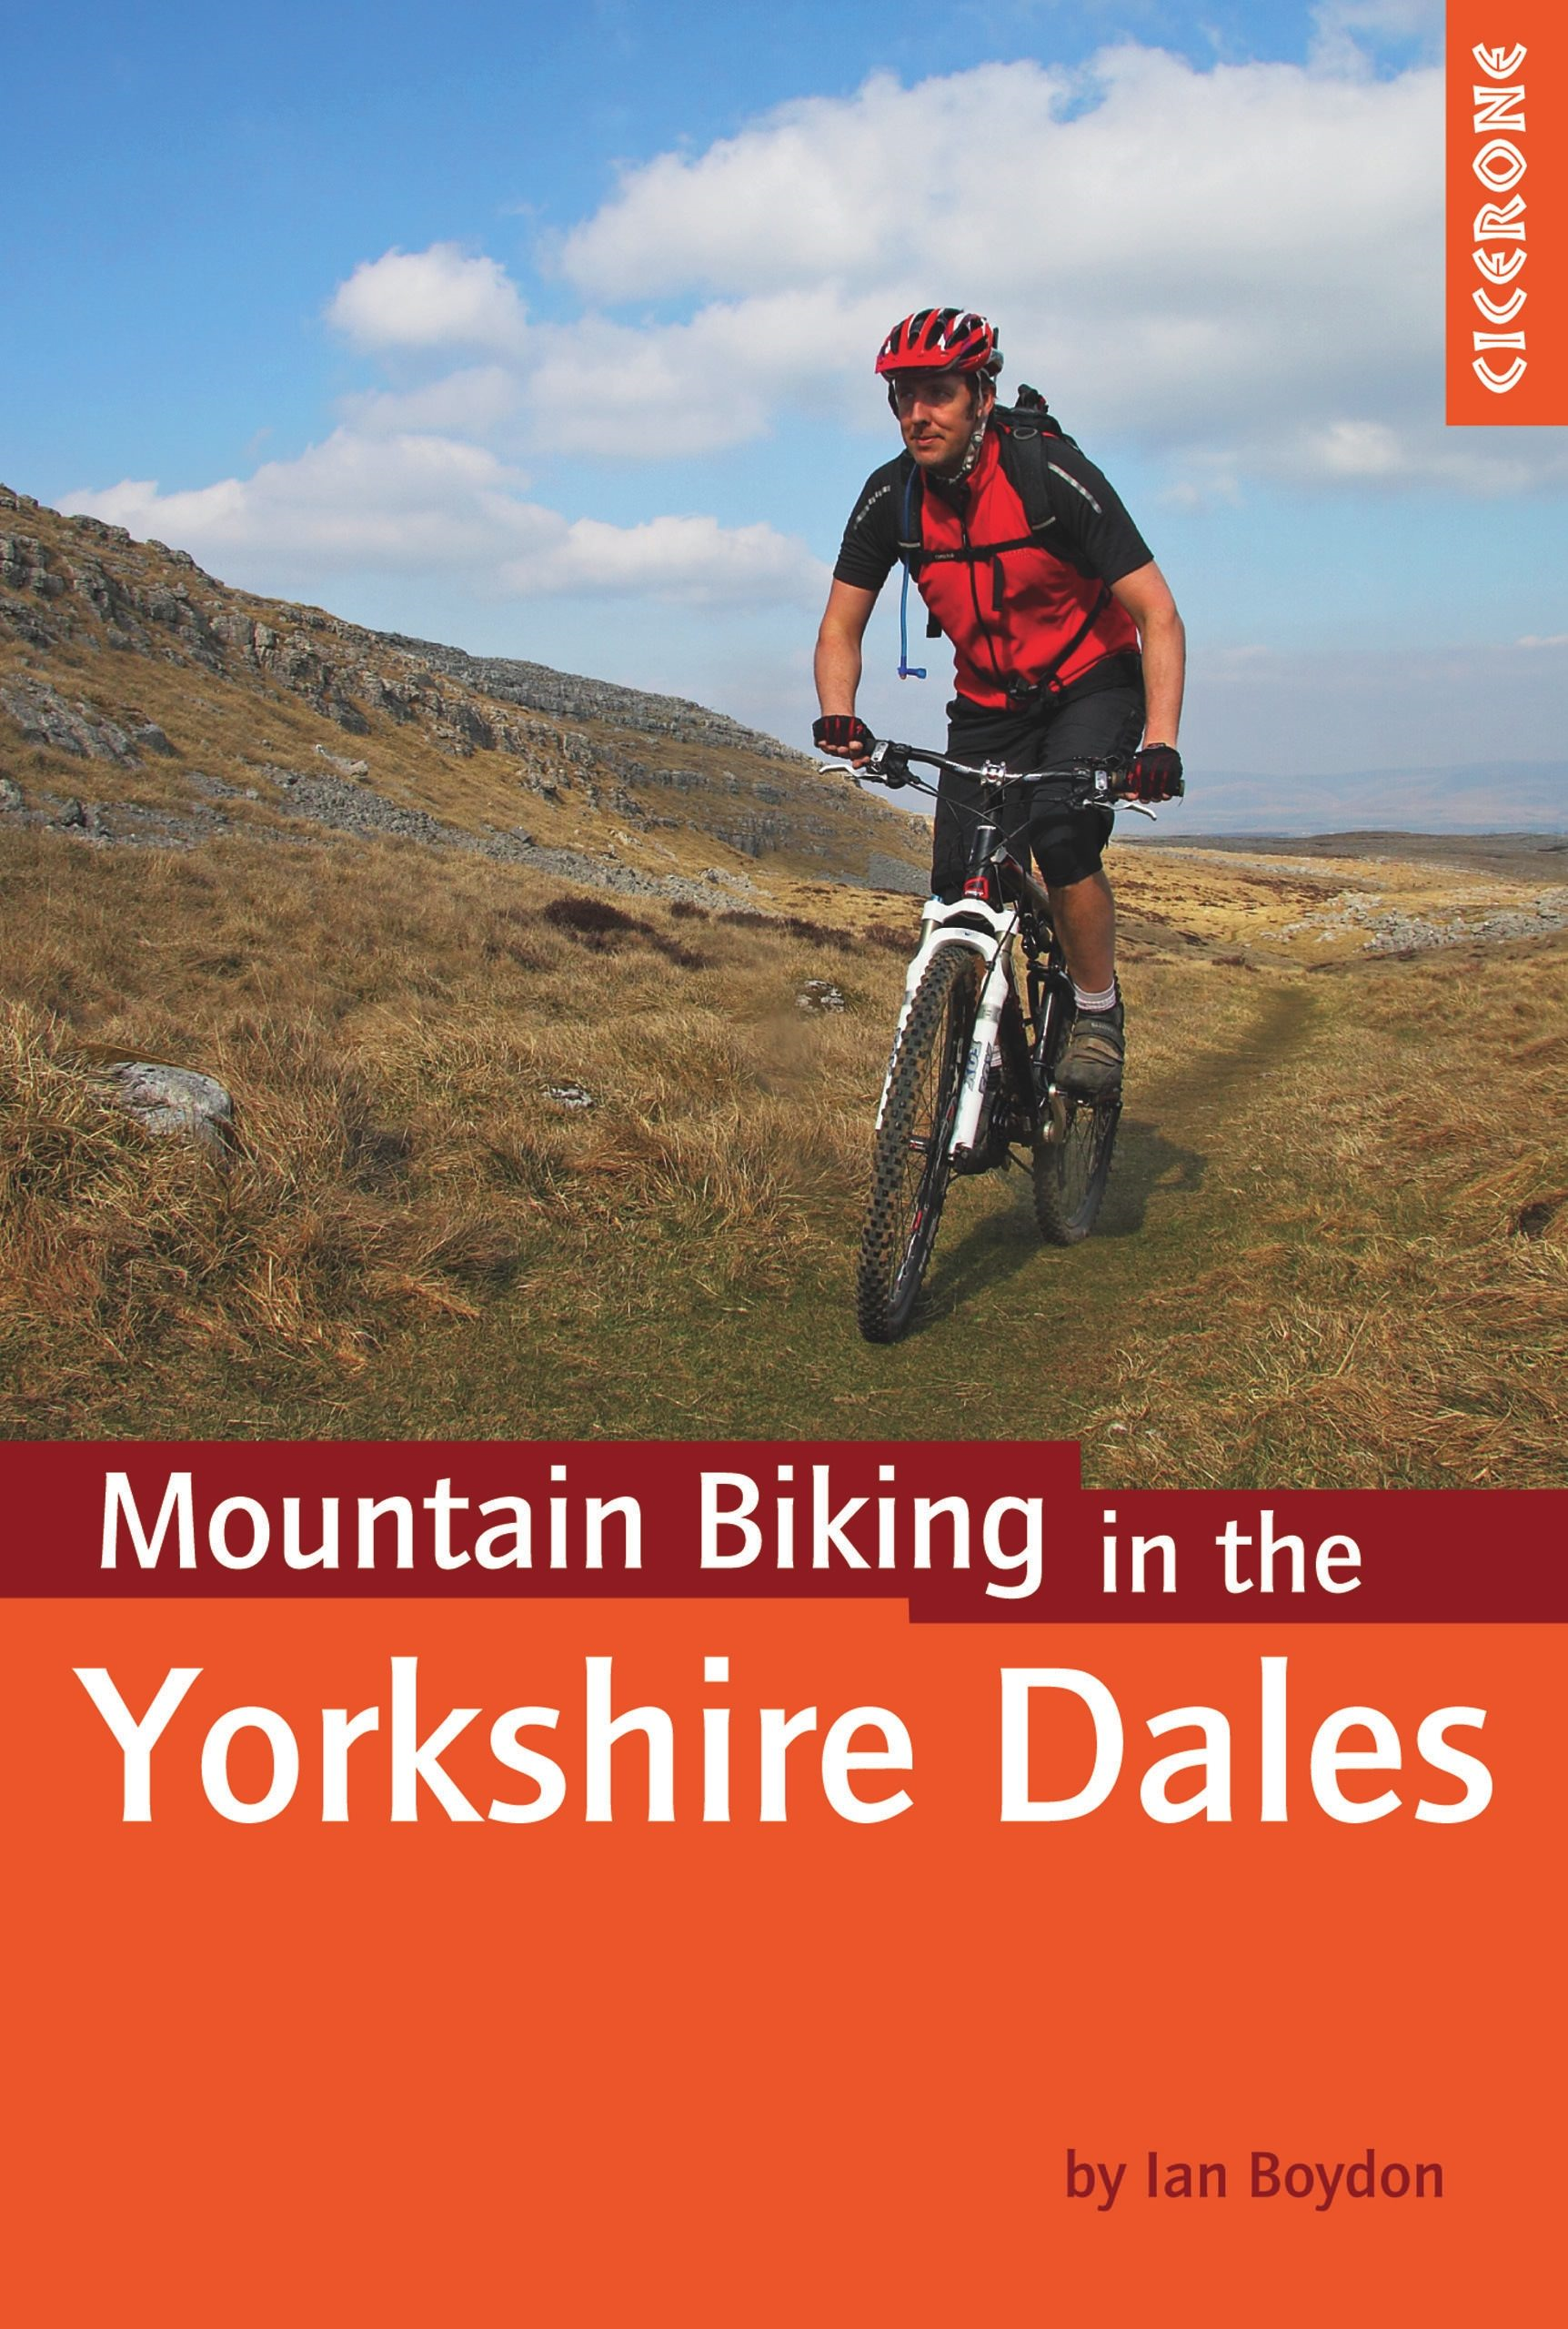 Mountain Biking in the Yorkshire Dales